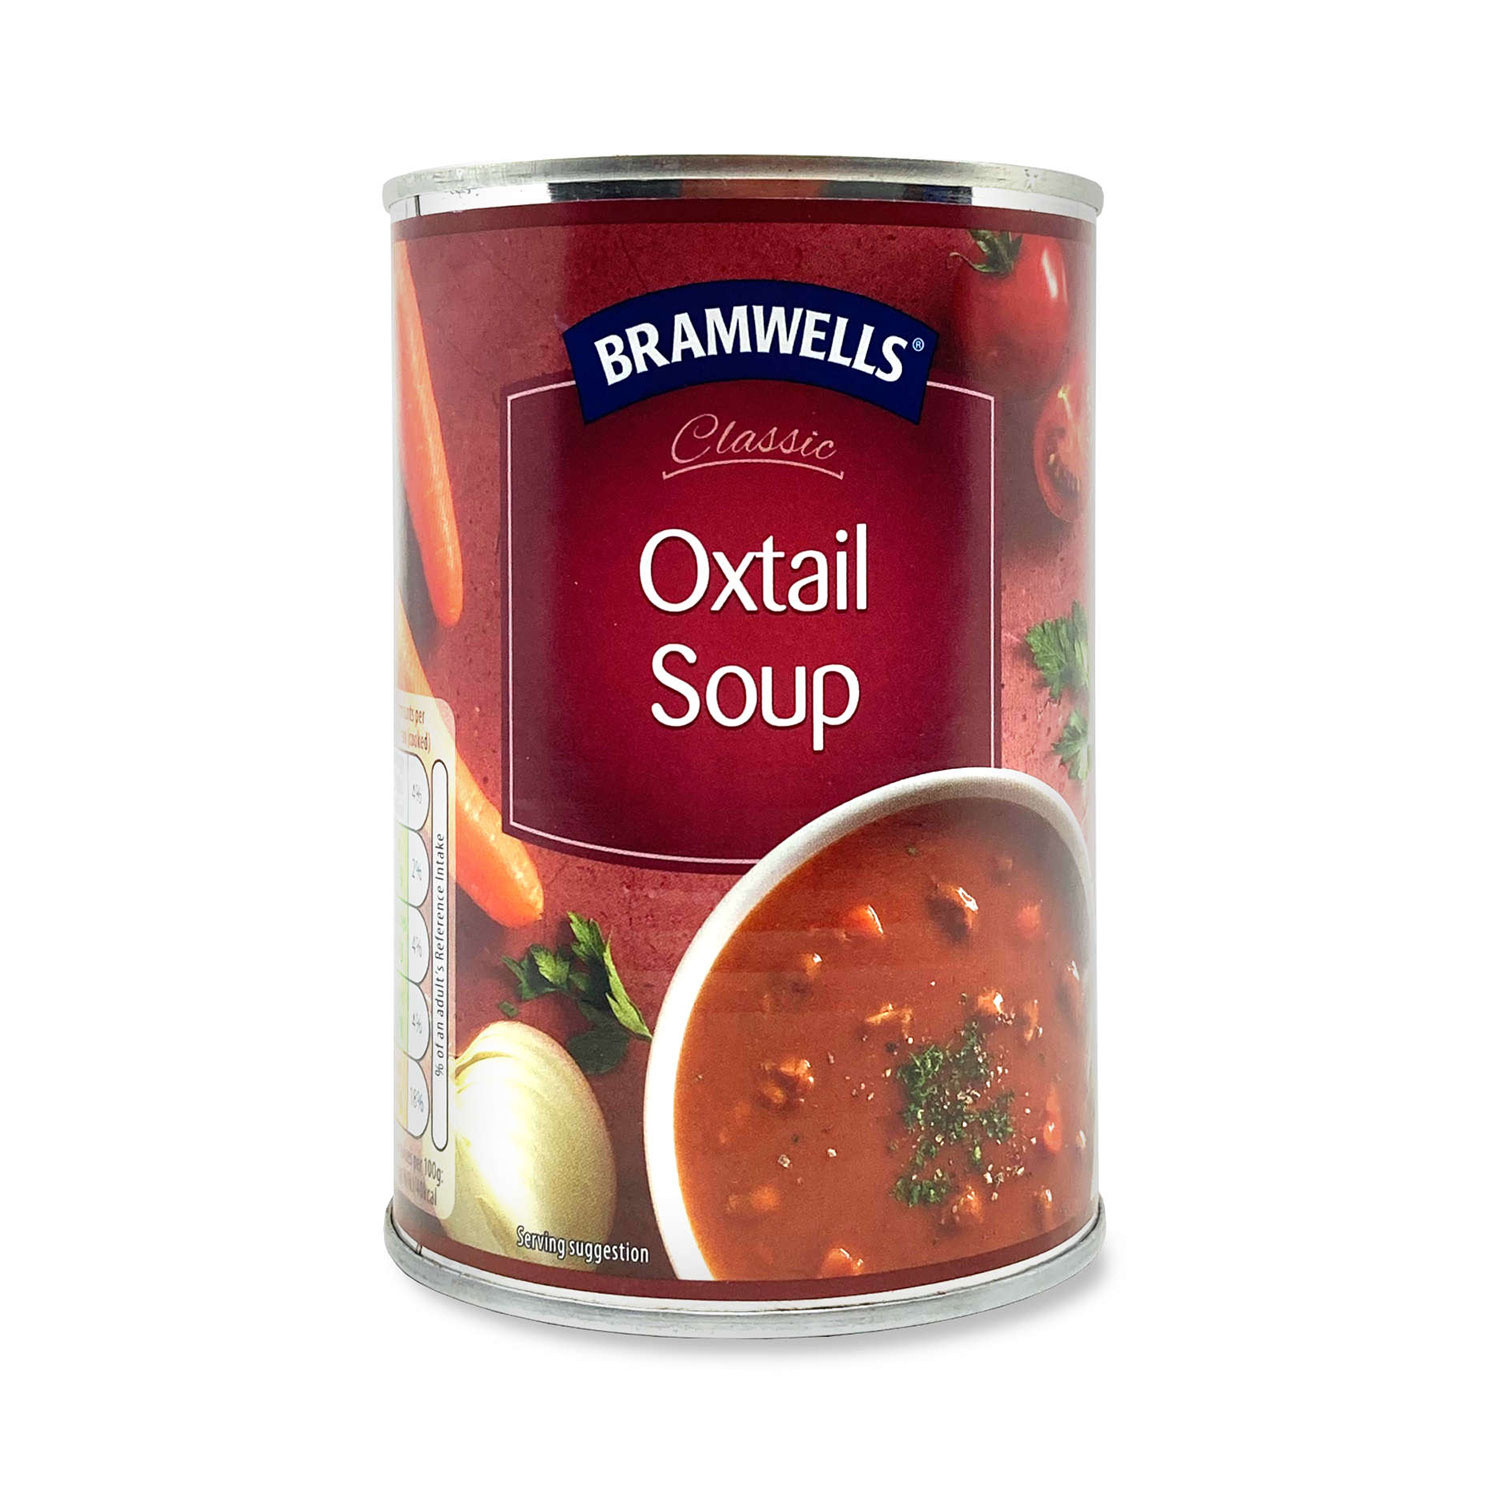 Classic Oxtail Soup